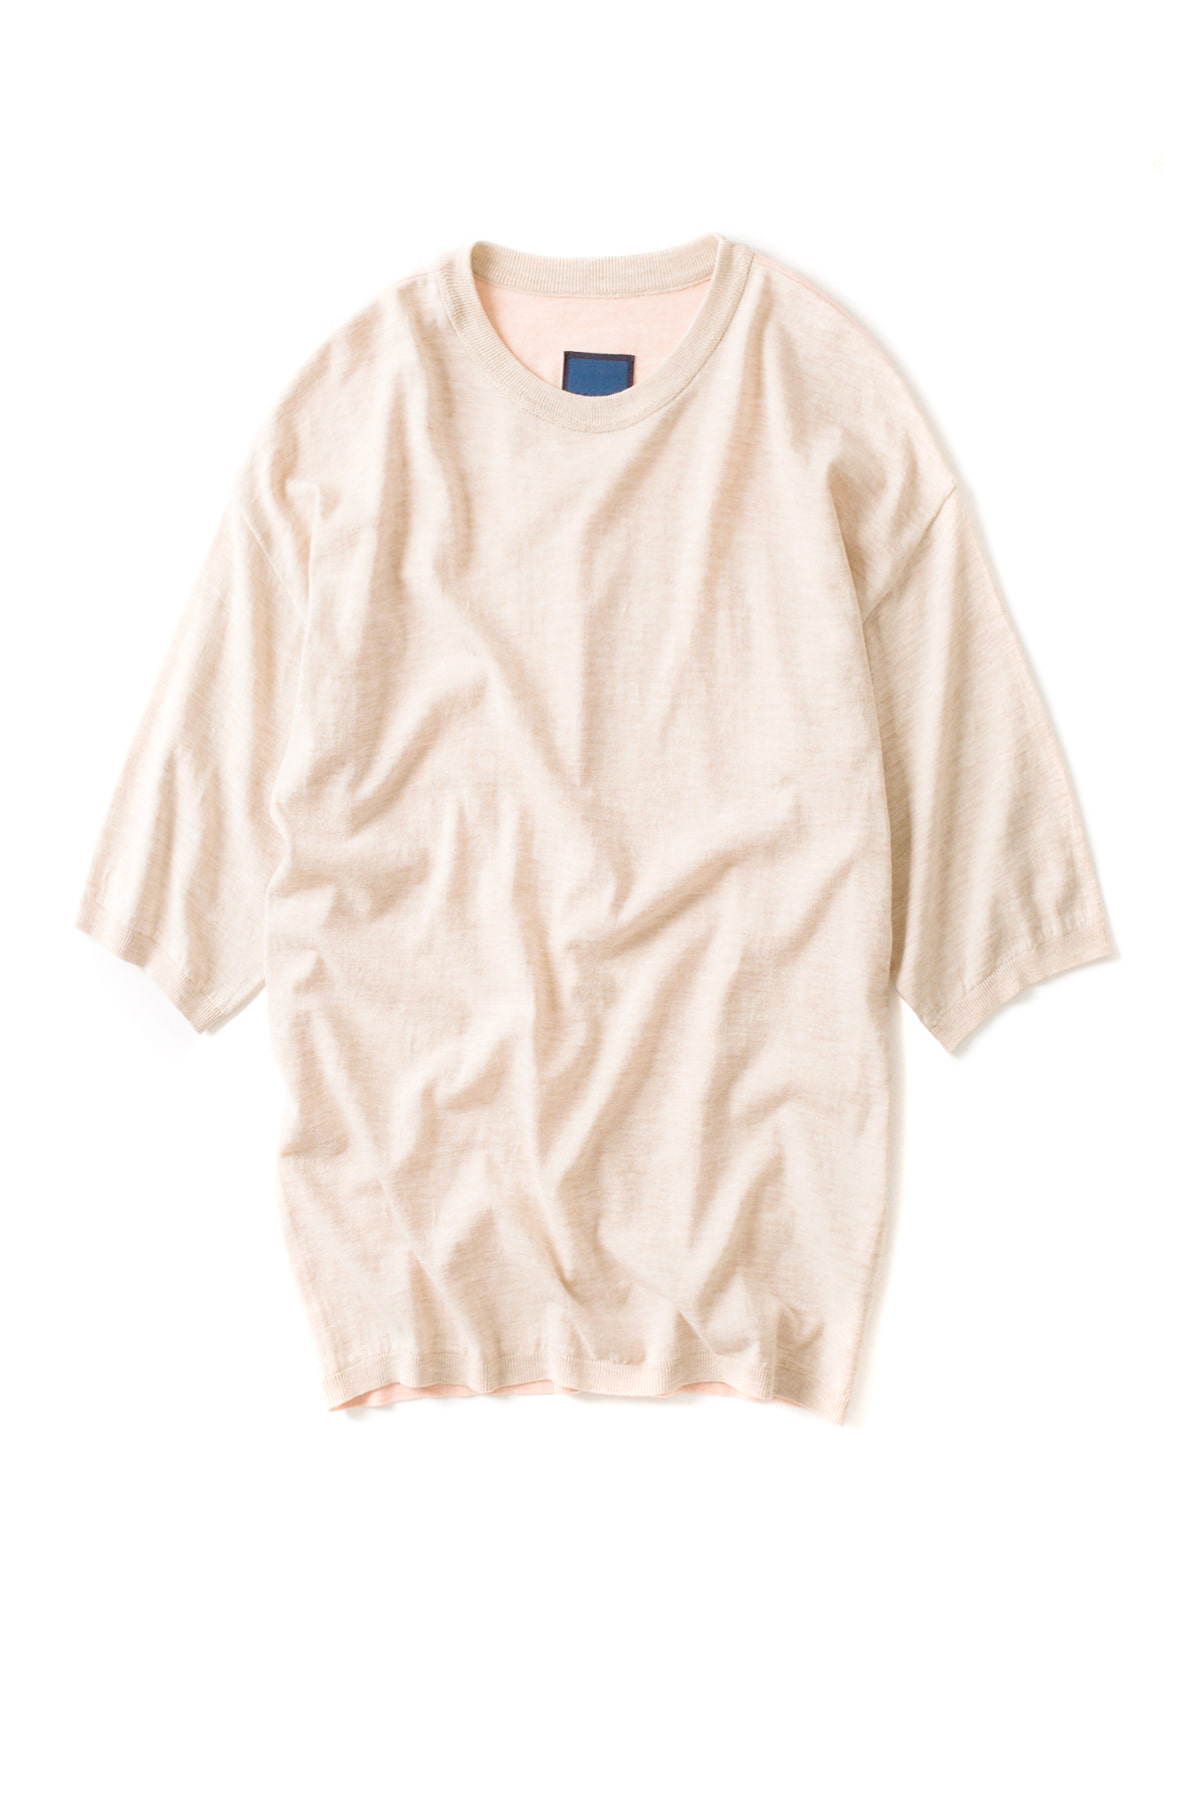 Document : M130 Cotton Sweater (Beige / Orange)